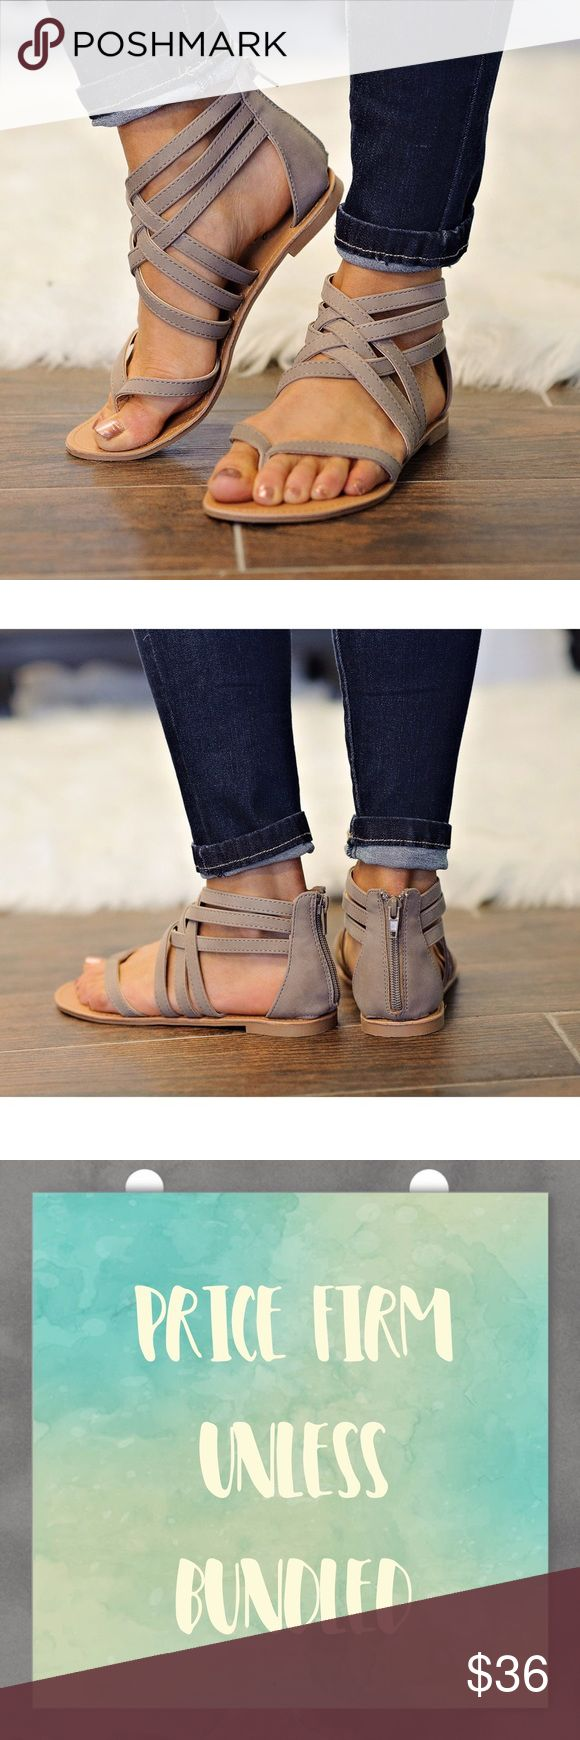 Taupe Strappy Sandals Taupe Strappy Sandals with zipper back closure. Trendy and comfy! Price firm unless bundled. No trades. Shoes Sandals